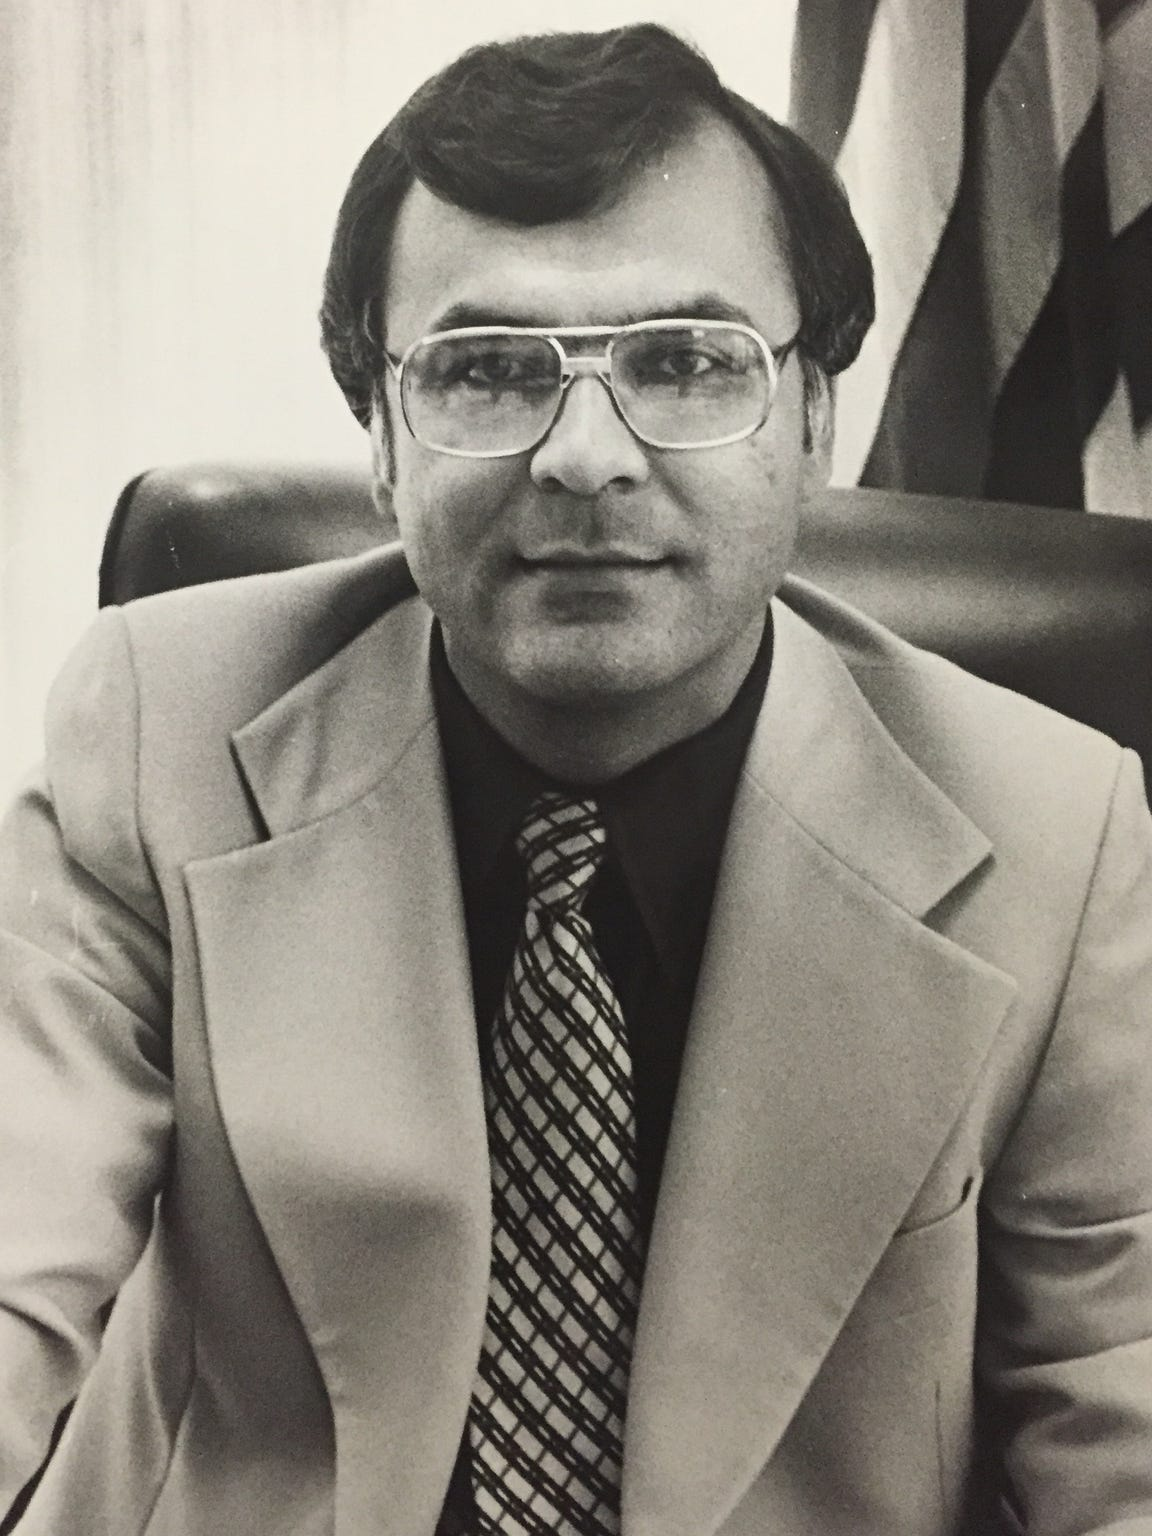 Former DEA Agent Phil Jordan in the 1970s.